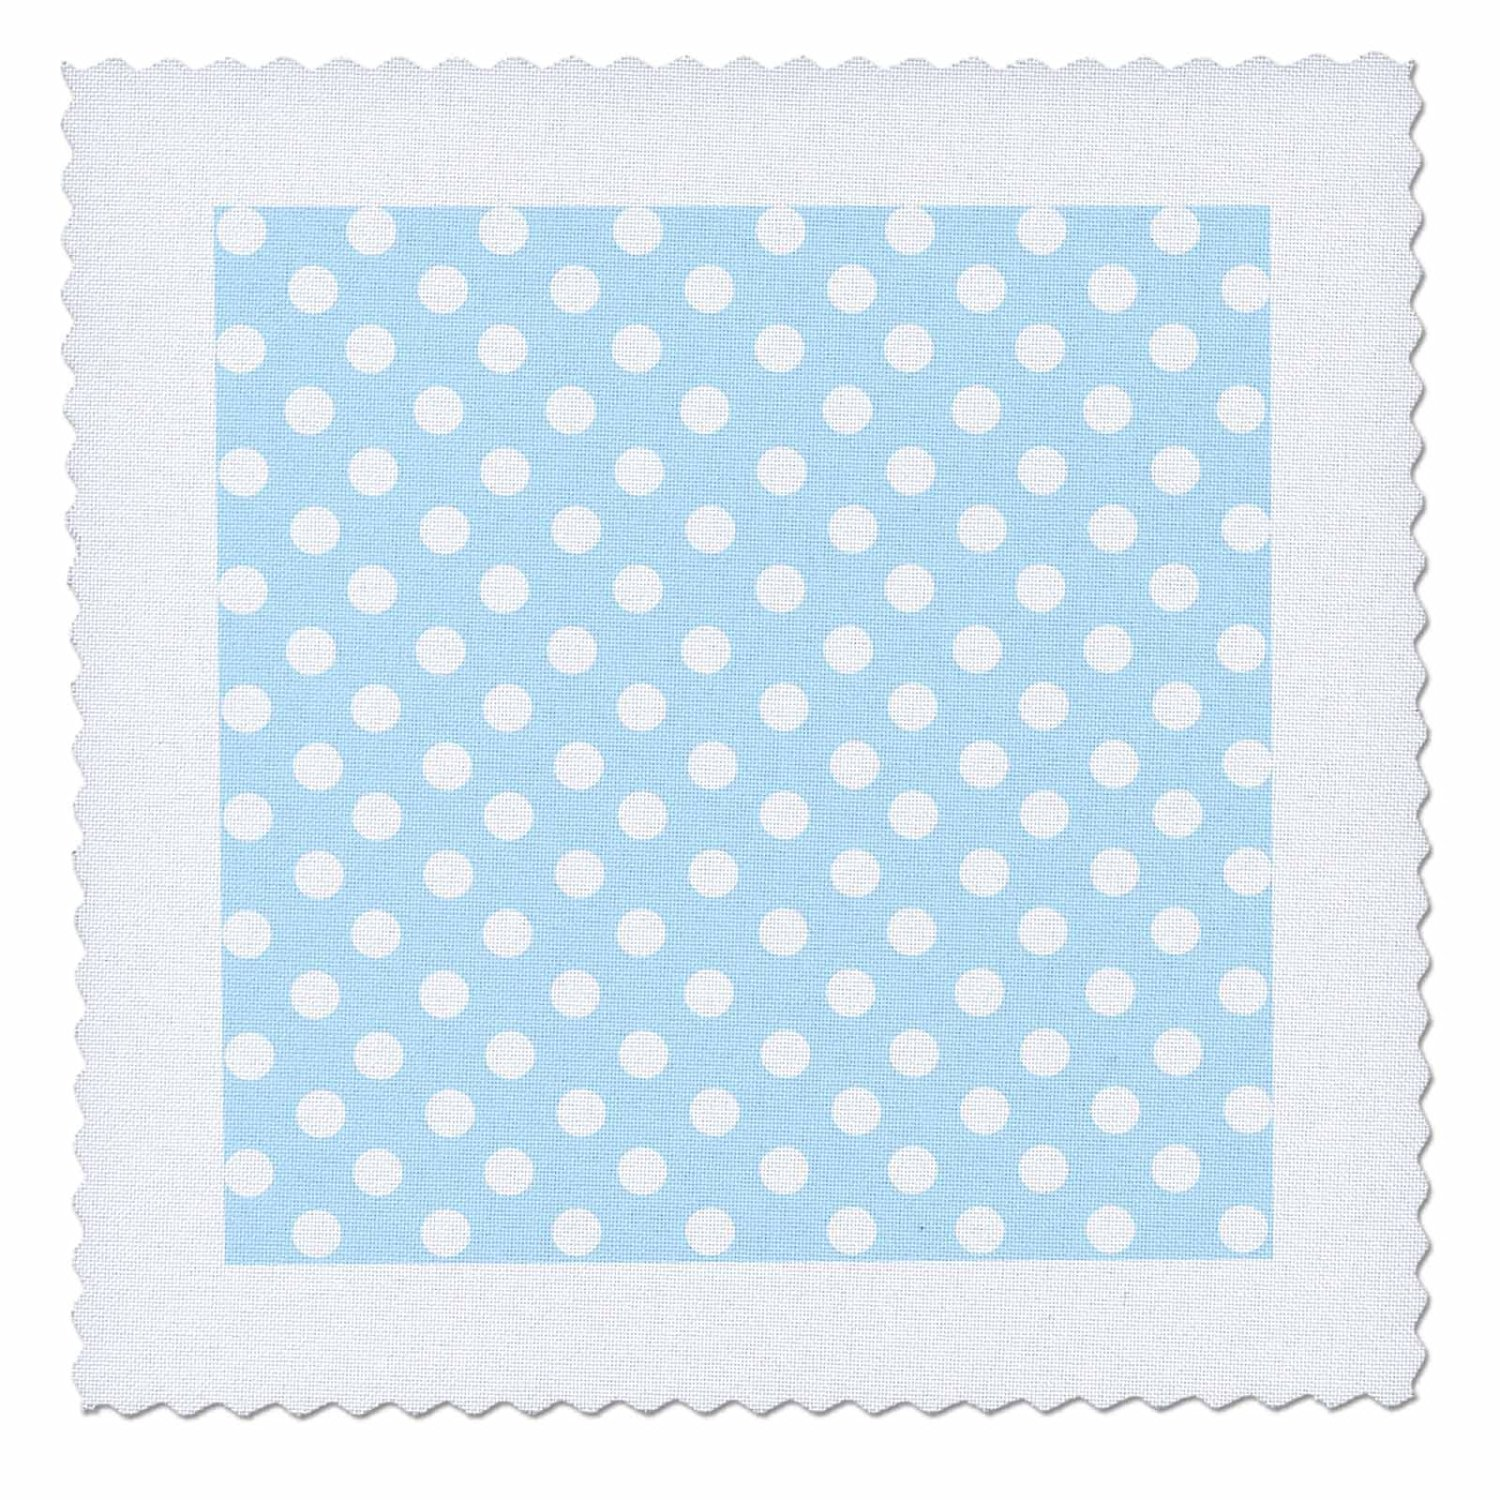 Buy Inspirationzstore Polka Dot Designs White Polka Dot Pattern On